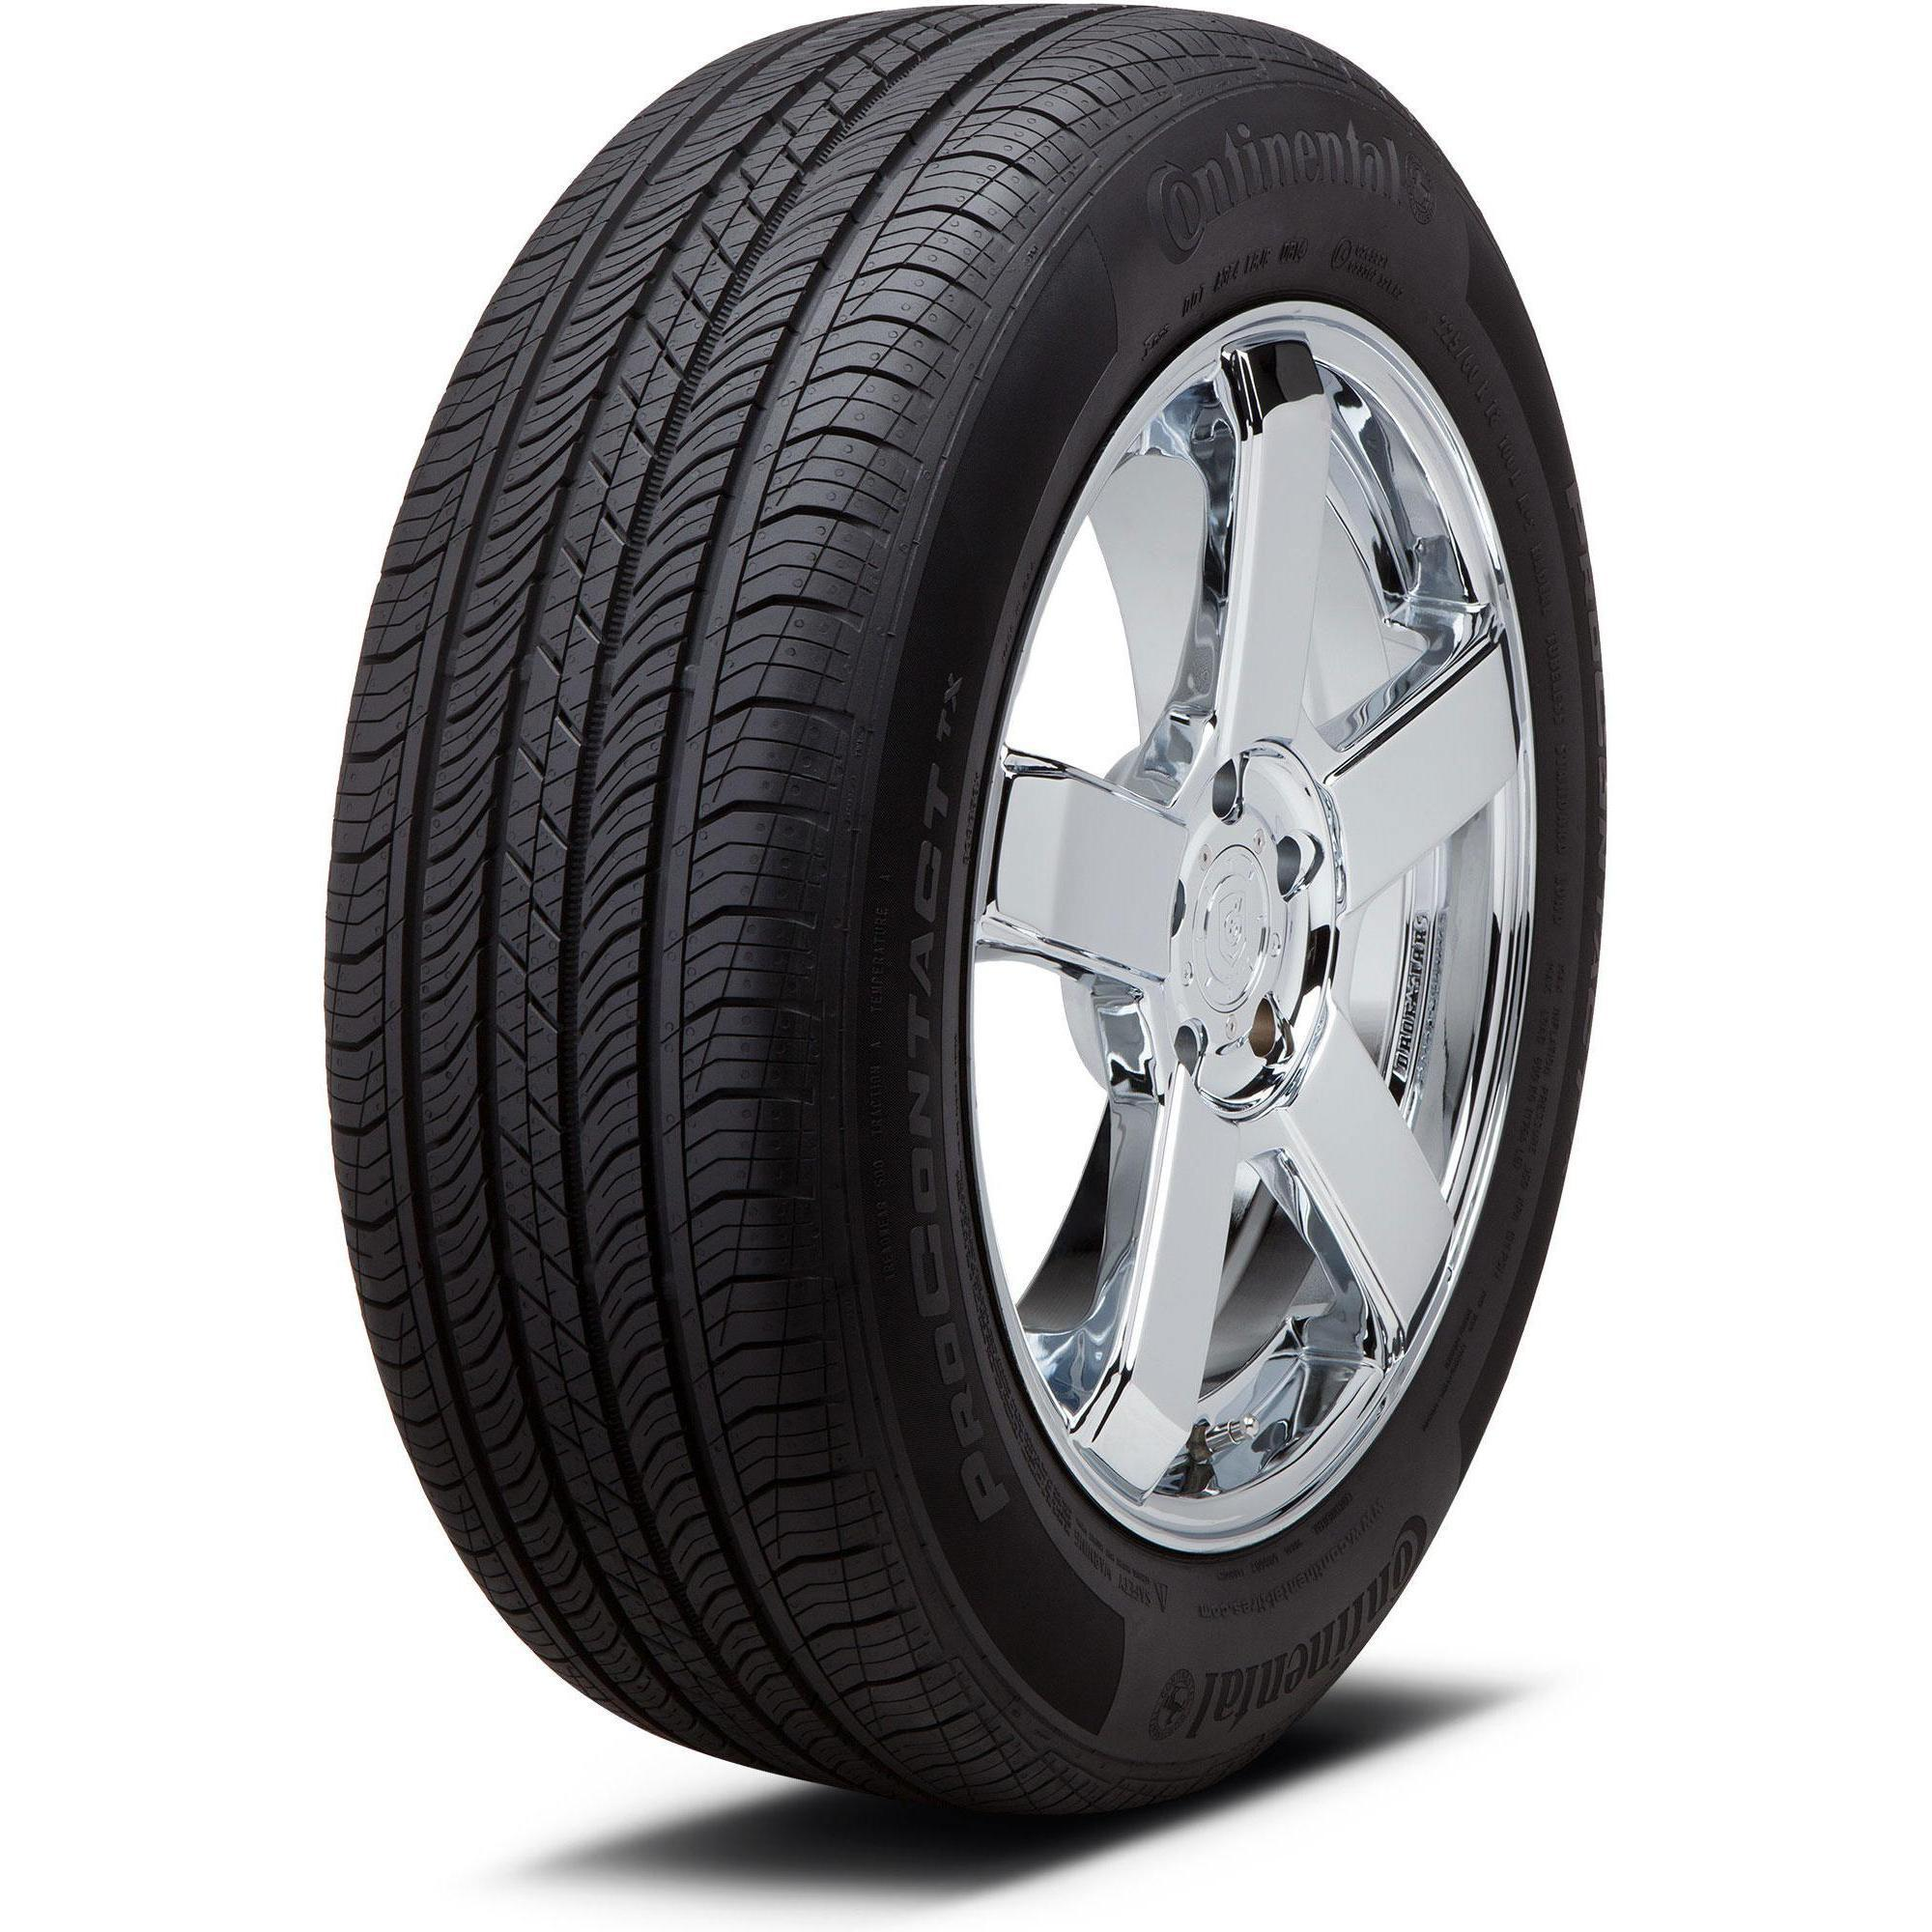 The latest Tweets from migom-zaim.ga (@TireBuyer). TireBuyer makes buying tires online easy. Follow us for coupons and find us at: migom-zaim.ga! #Tires #.